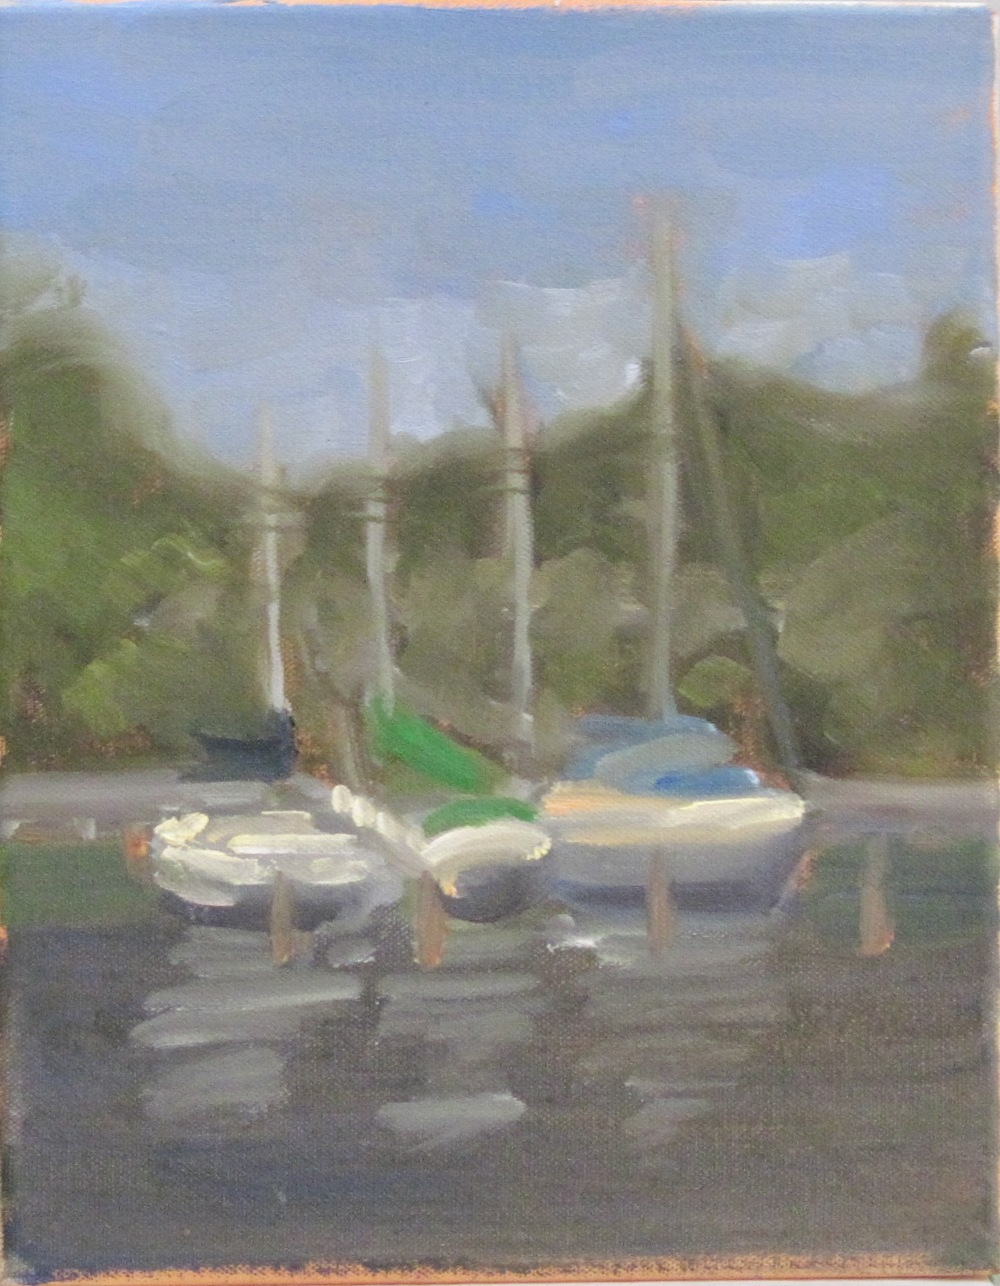 Sailboats on Solomon's Island, MD - study